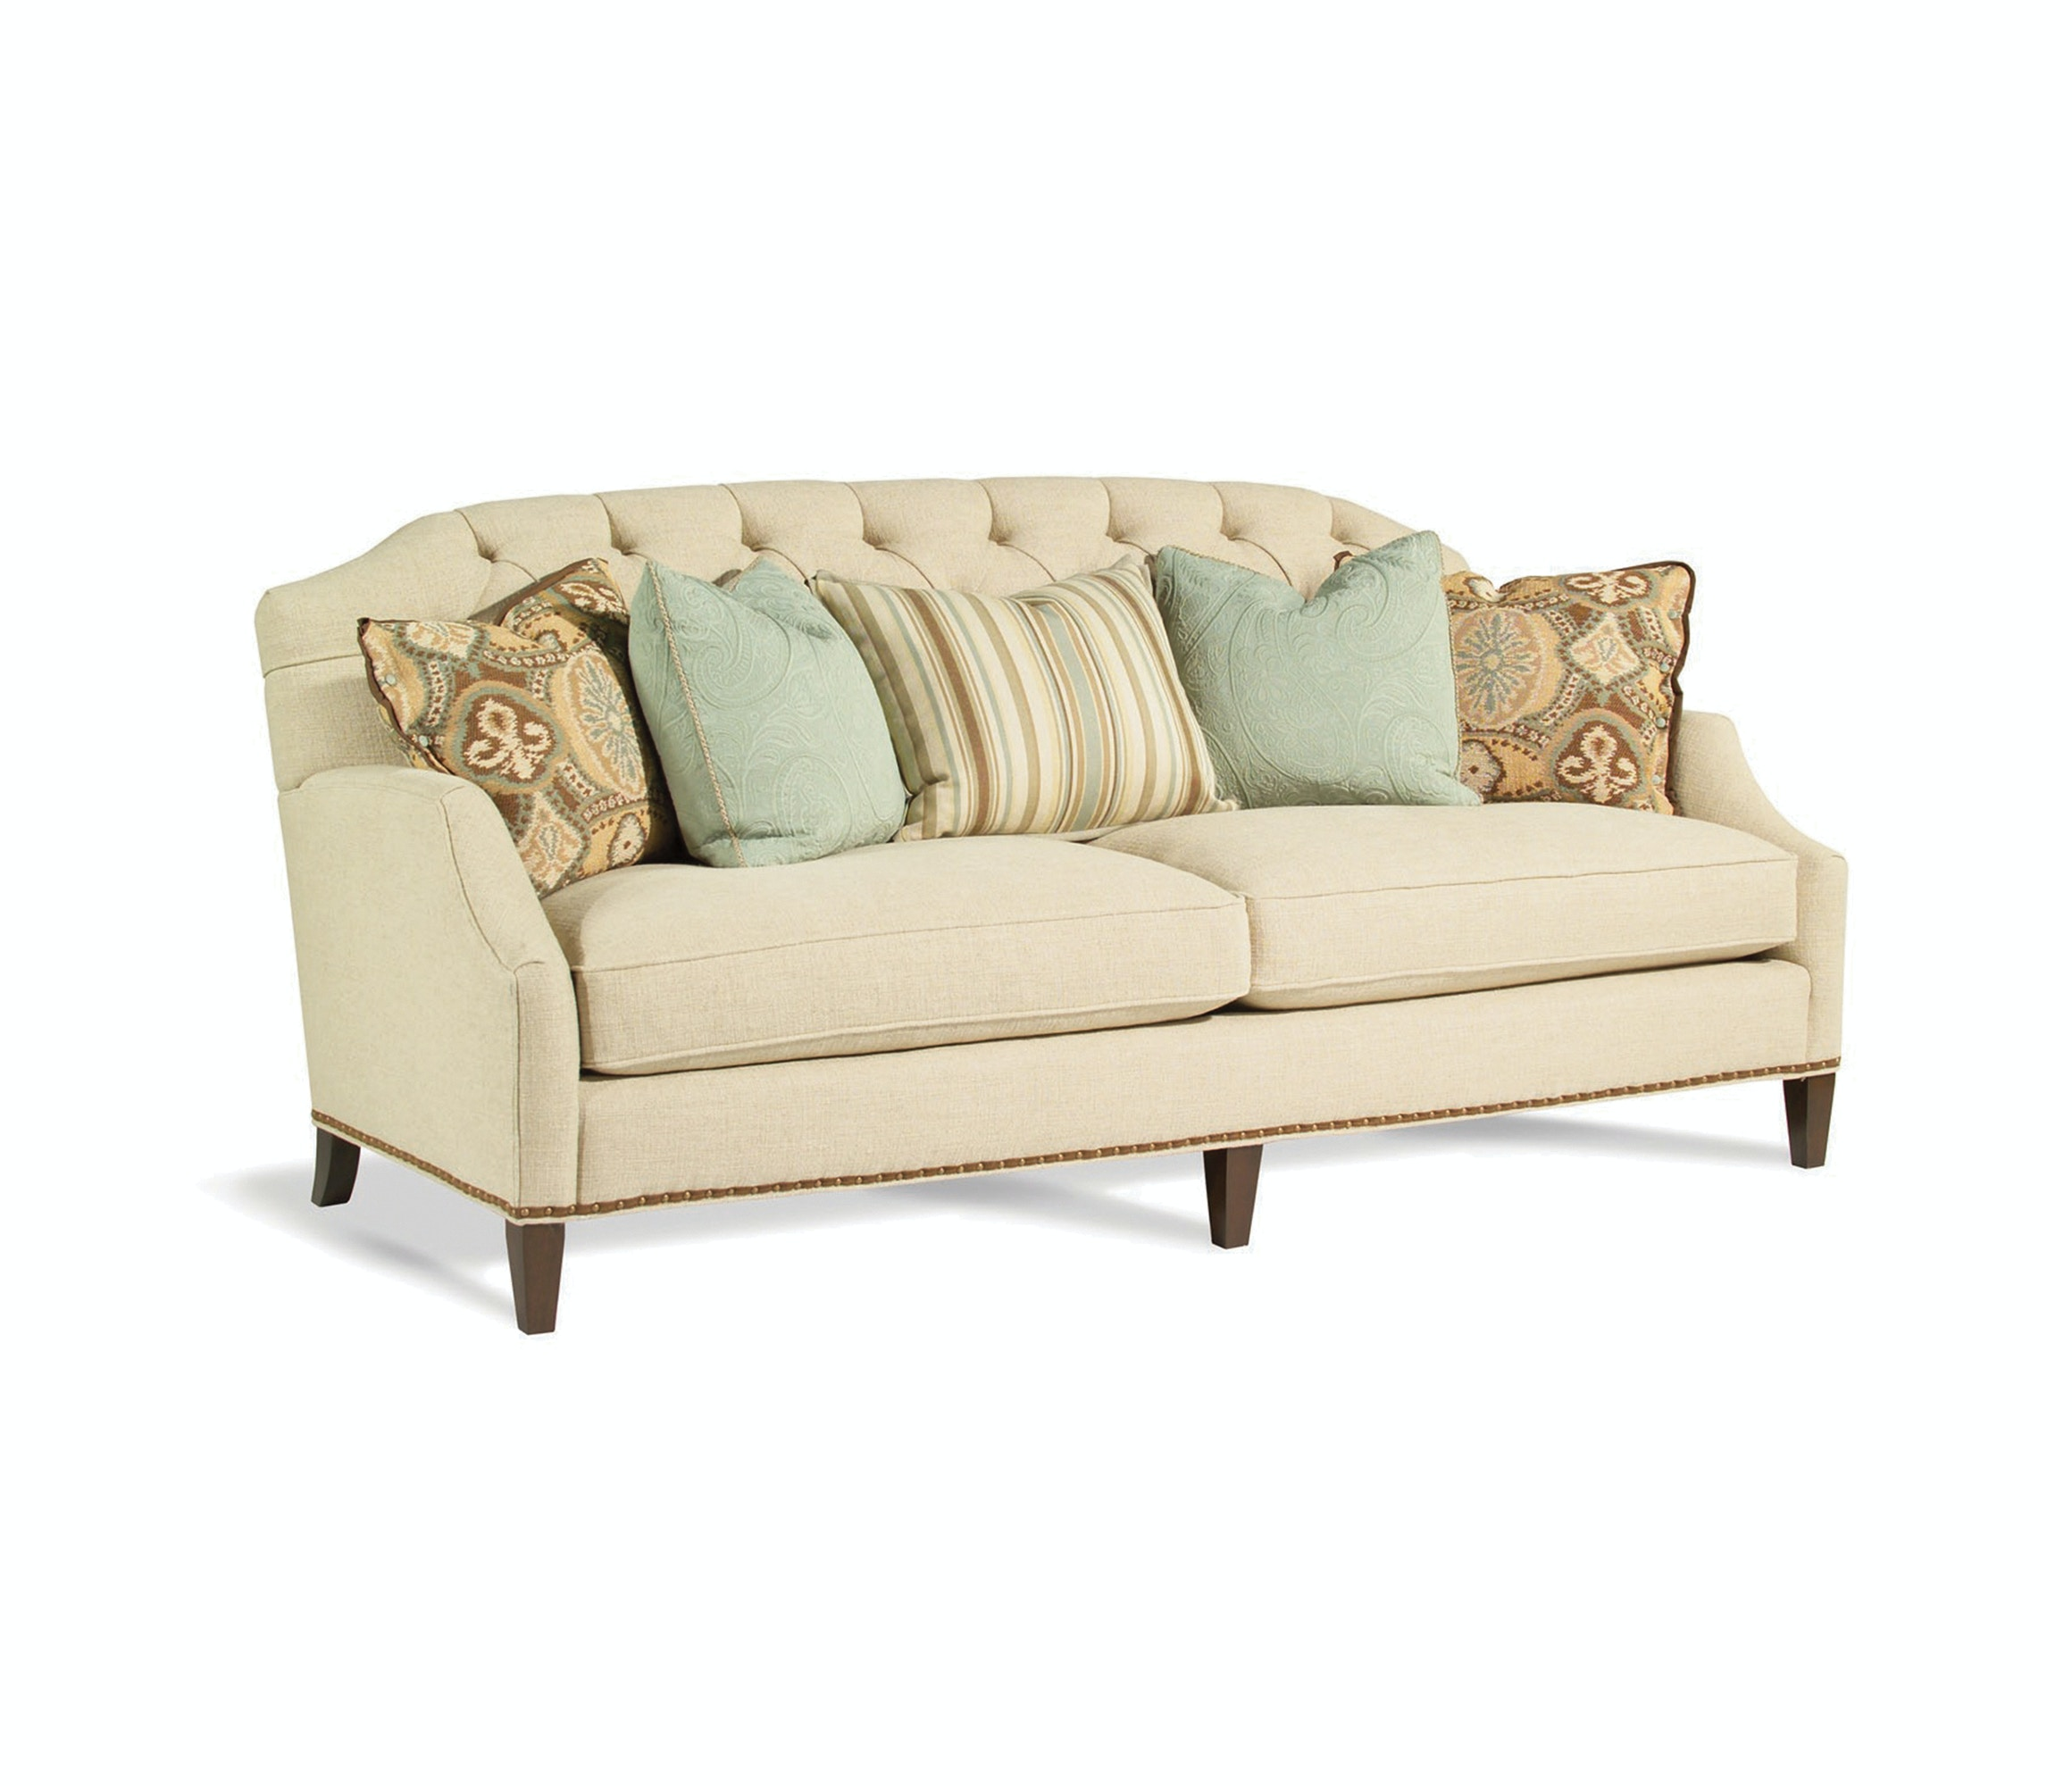 taylor king sofas custom made sofa new jersey furniture living room tori 1027 03